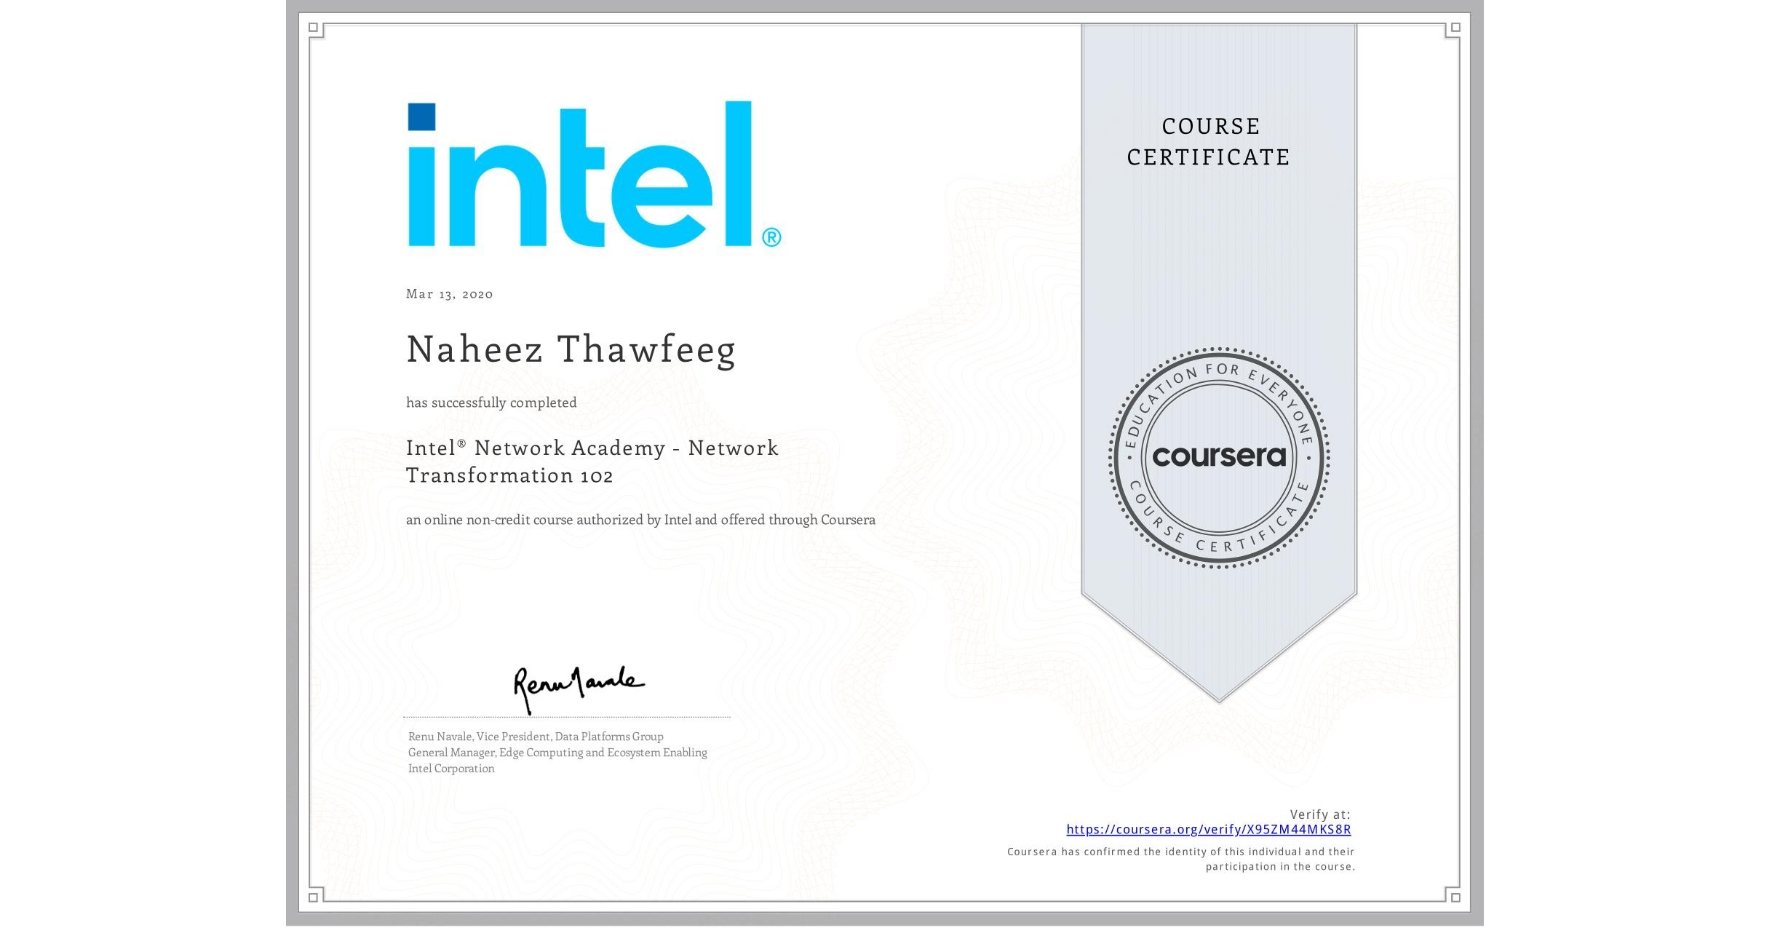 View certificate for Naheez Thawfeeg, Intel® Network Academy - Network Transformation 102, an online non-credit course authorized by Intel and offered through Coursera